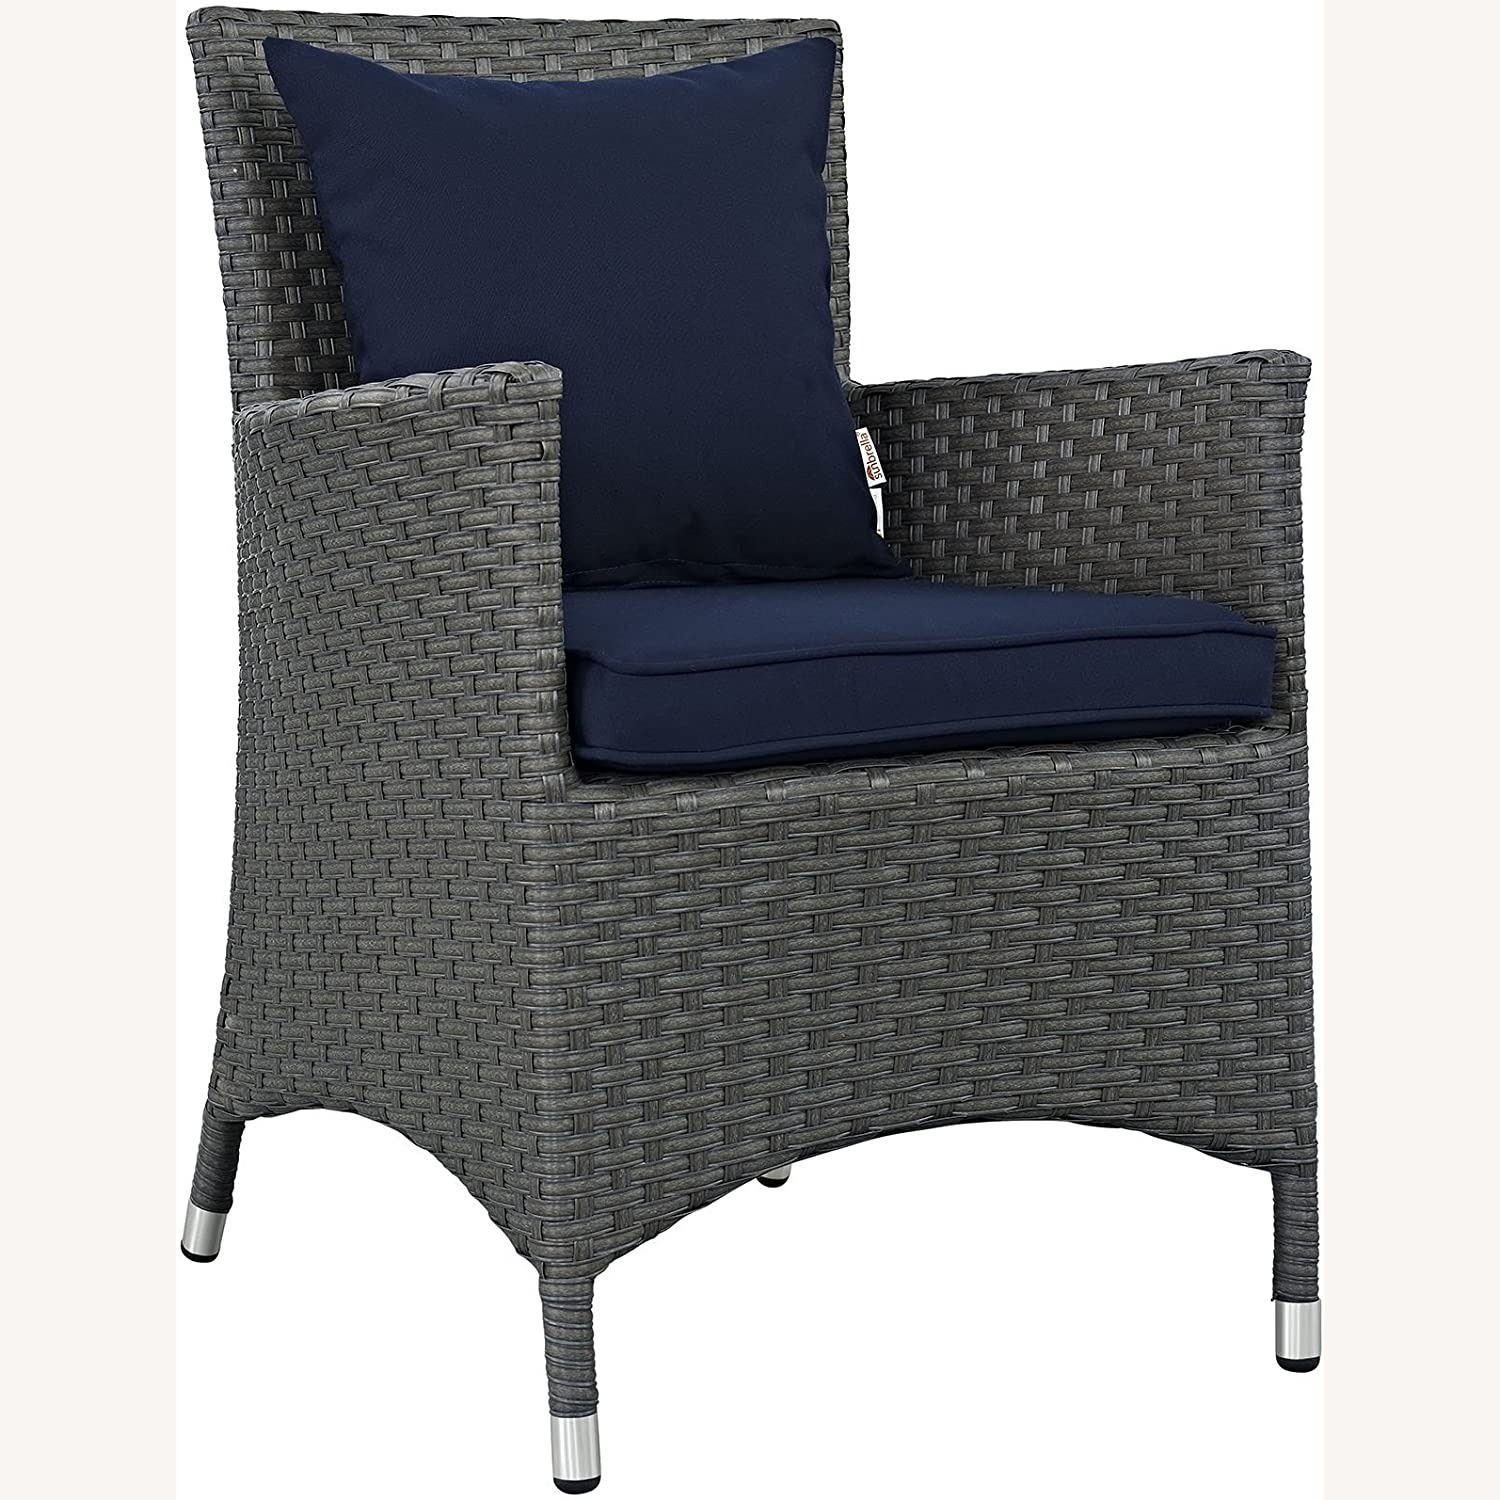 Modern 4-Piece Dining Set In Canvas Navy Finish - image-1